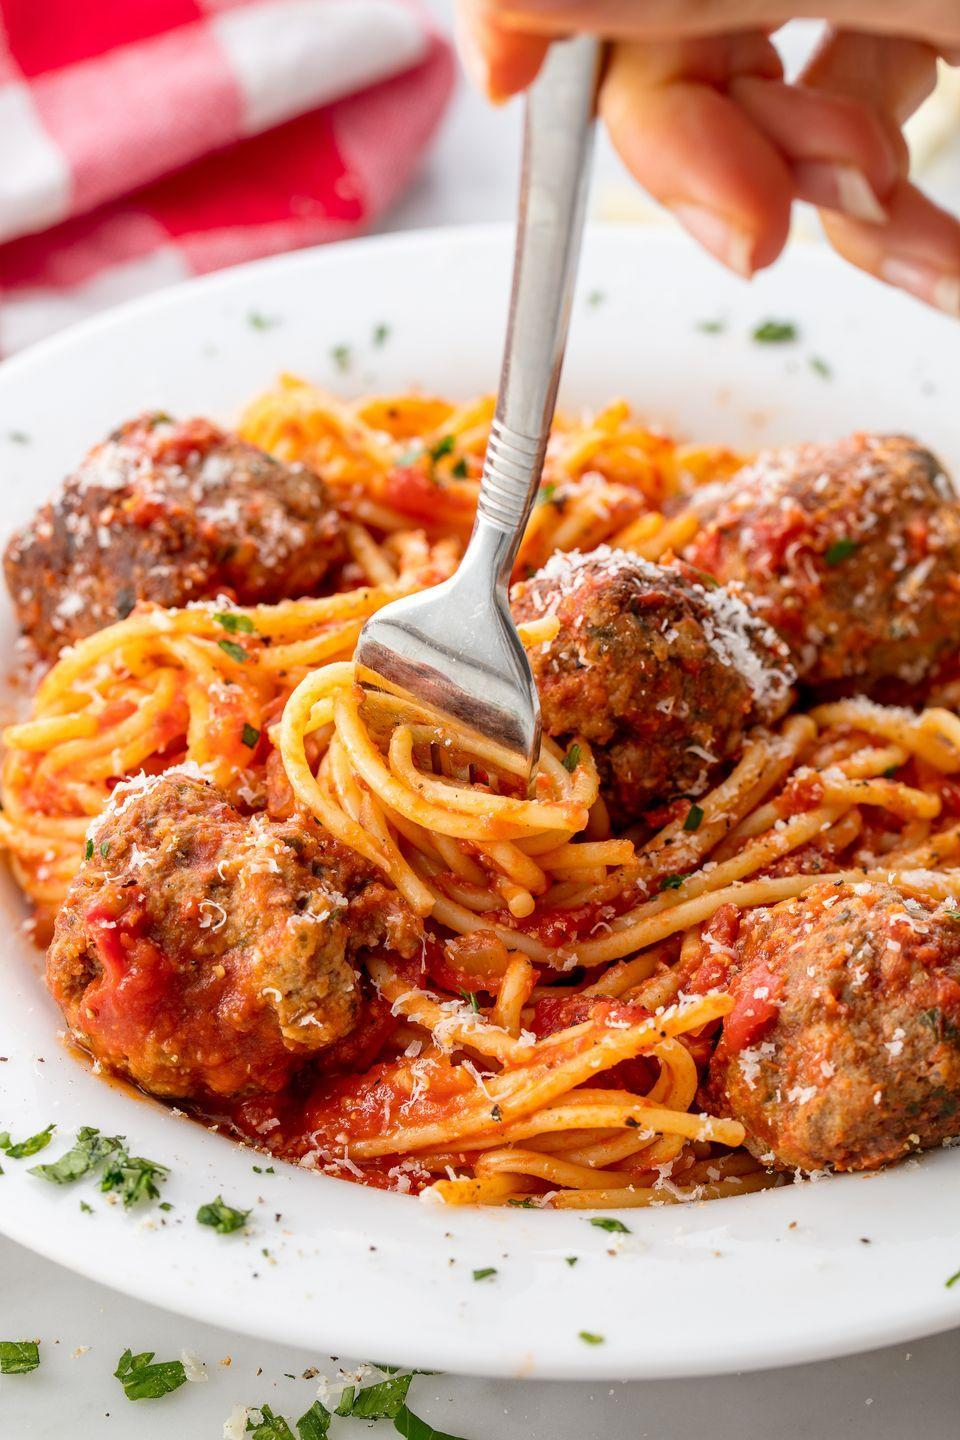 """<p>Making your own meatballs and sauce makes it even better.</p><p>Get the recipe from <a href=""""https://www.delish.com/cooking/recipe-ideas/recipes/a55764/best-spaghetti-and-meatballs-recipe/"""" rel=""""nofollow noopener"""" target=""""_blank"""" data-ylk=""""slk:Delish"""" class=""""link rapid-noclick-resp"""">Delish</a>.</p><p><a class=""""link rapid-noclick-resp"""" href=""""https://www.amazon.com/dp/1328498867/?tag=syn-yahoo-20&ascsubtag=%5Bartid%7C1782.g.3338%5Bsrc%7Cyahoo-us"""" rel=""""nofollow noopener"""" target=""""_blank"""" data-ylk=""""slk:GET YOURS NOW!"""">GET YOURS NOW!</a> <strong><em>Delish Cookbook, amazon.com</em></strong><br></p>"""